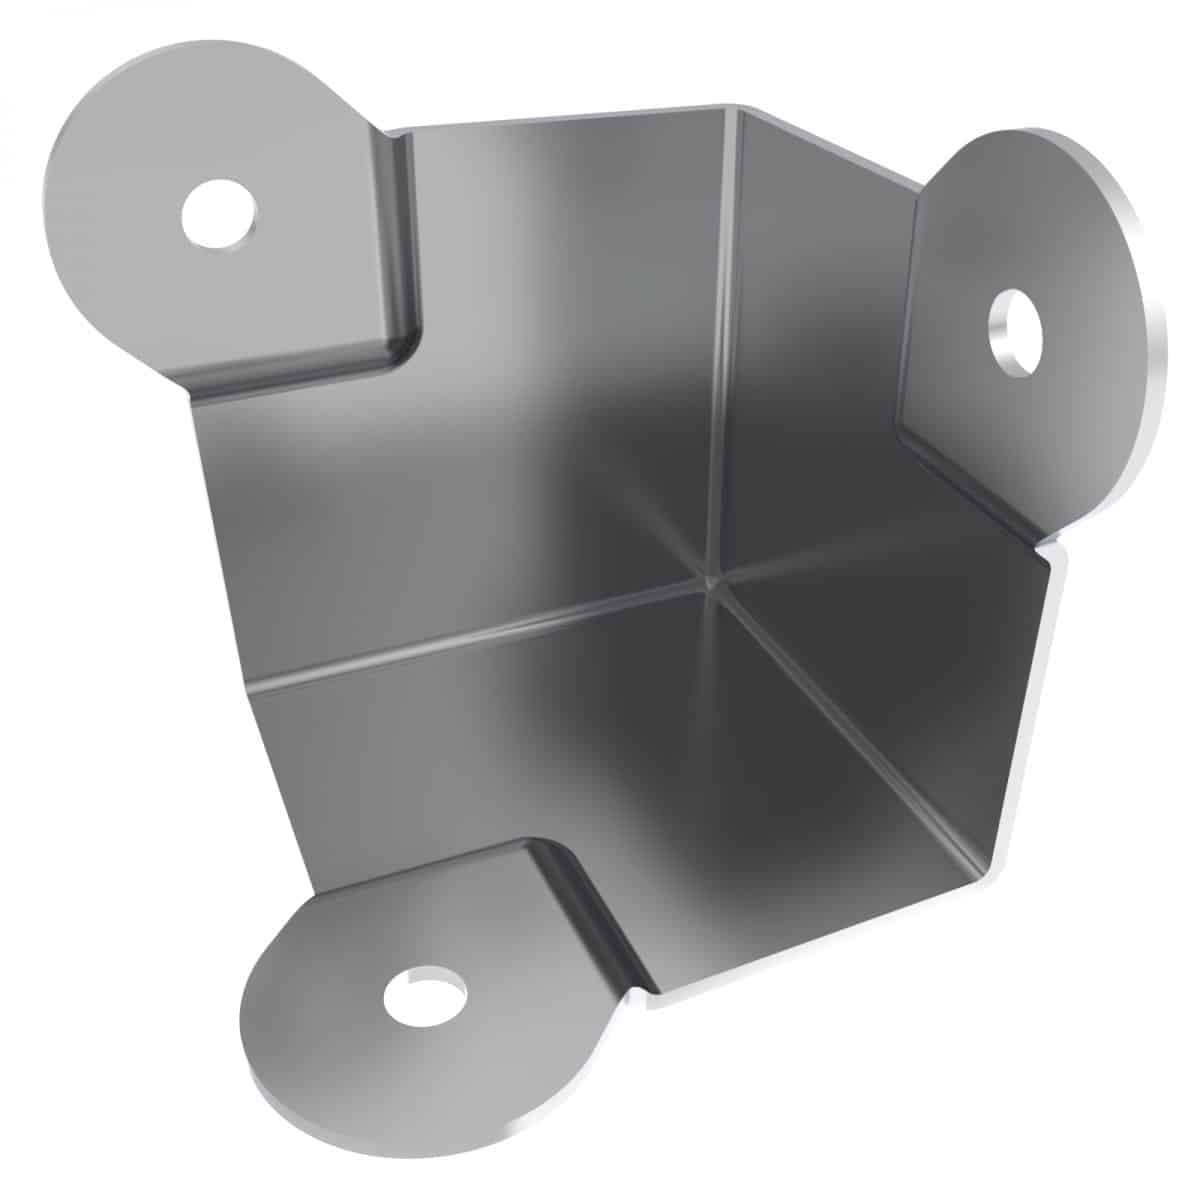 ARMOR C2094 Small 3 Hole Flat Corner with Offset